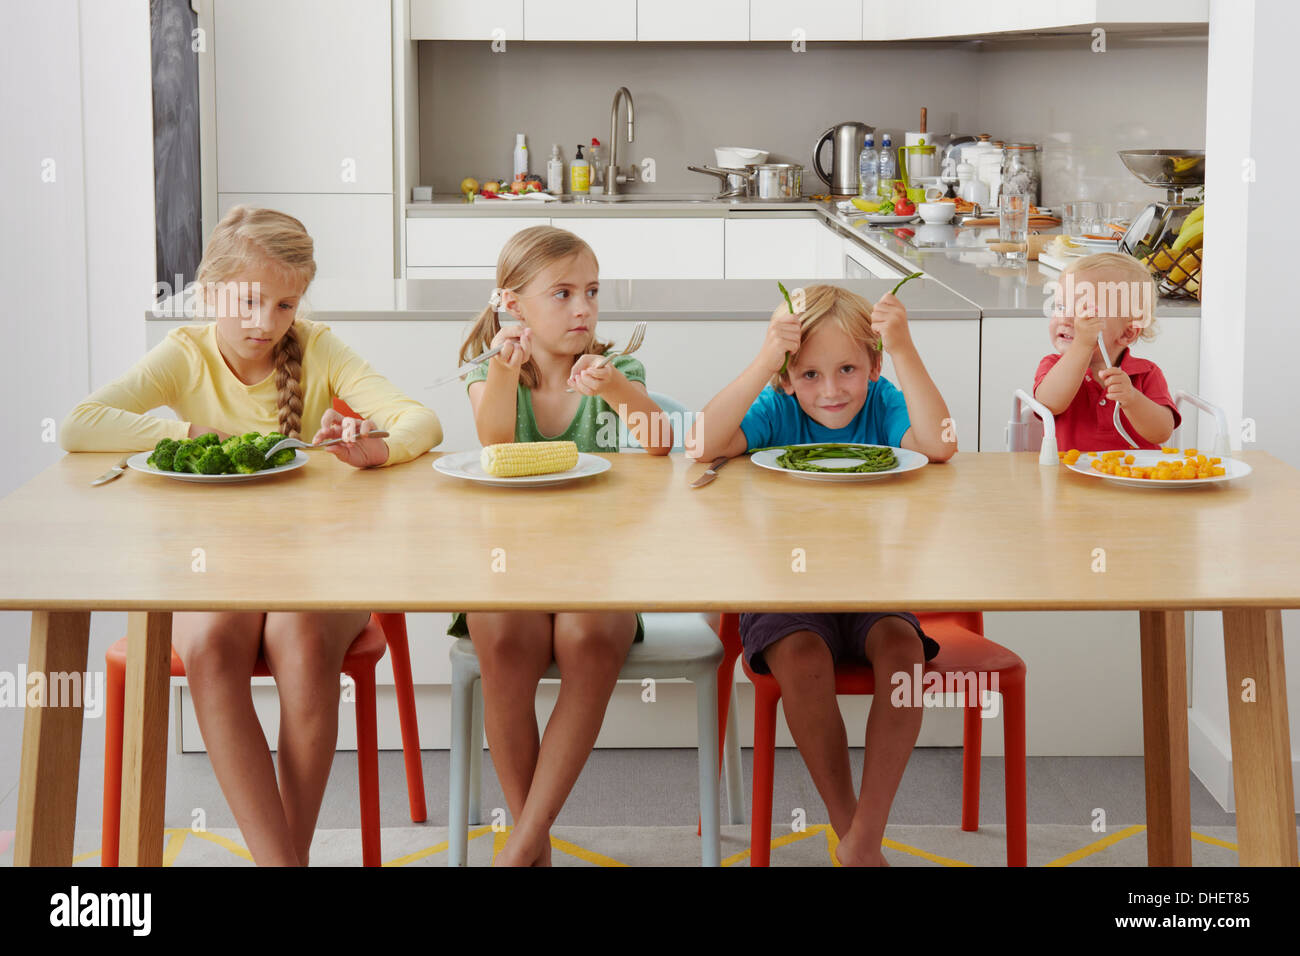 Children refusing to eat vegetables - Stock Image